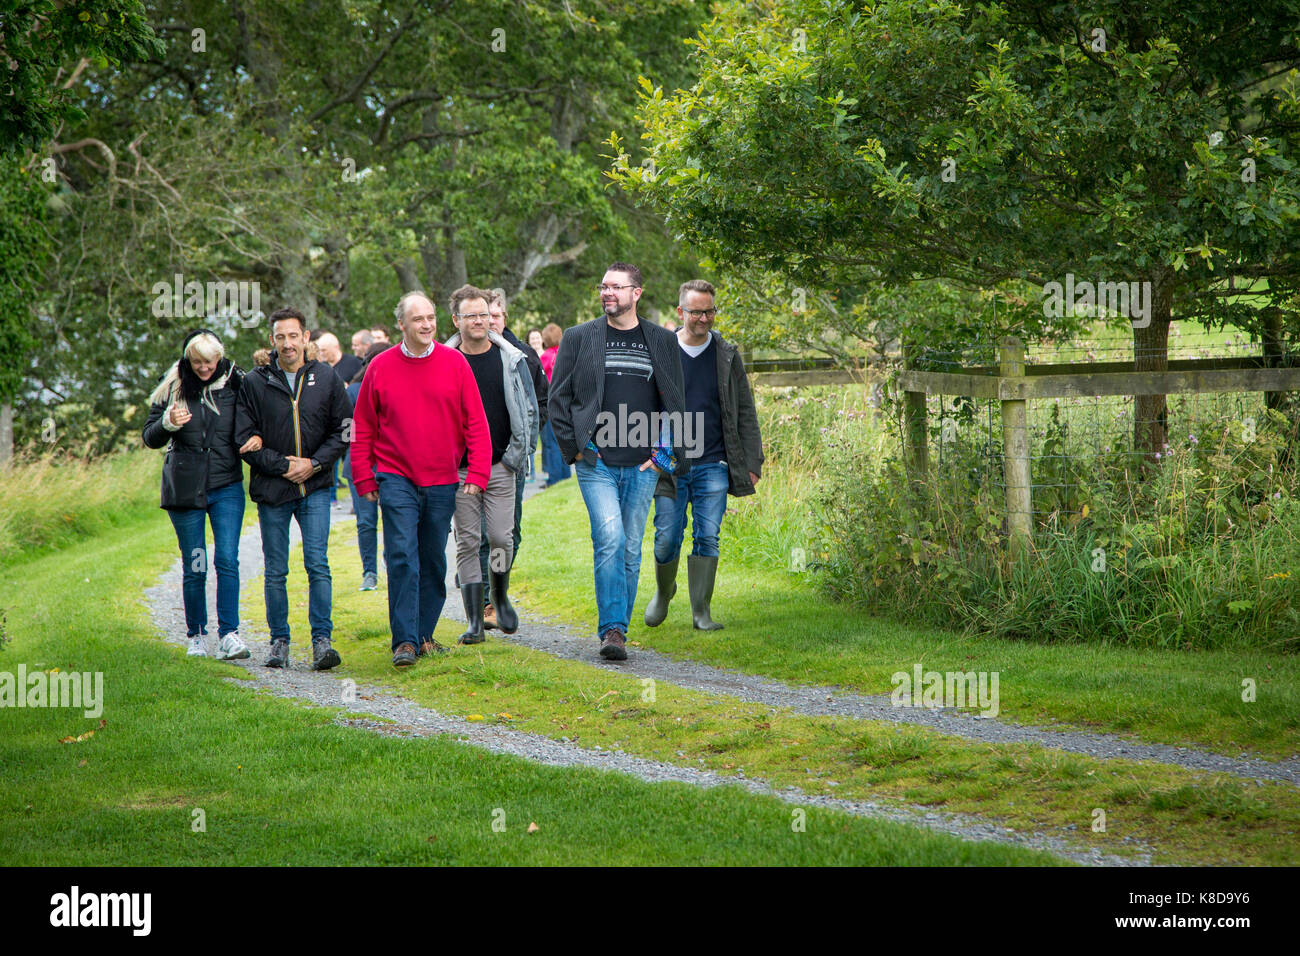 Lord Erne (John John Crichton), 7th Earl of Erne, leads guests on a walking tour of the grounds at Crom Castle, - Stock Image